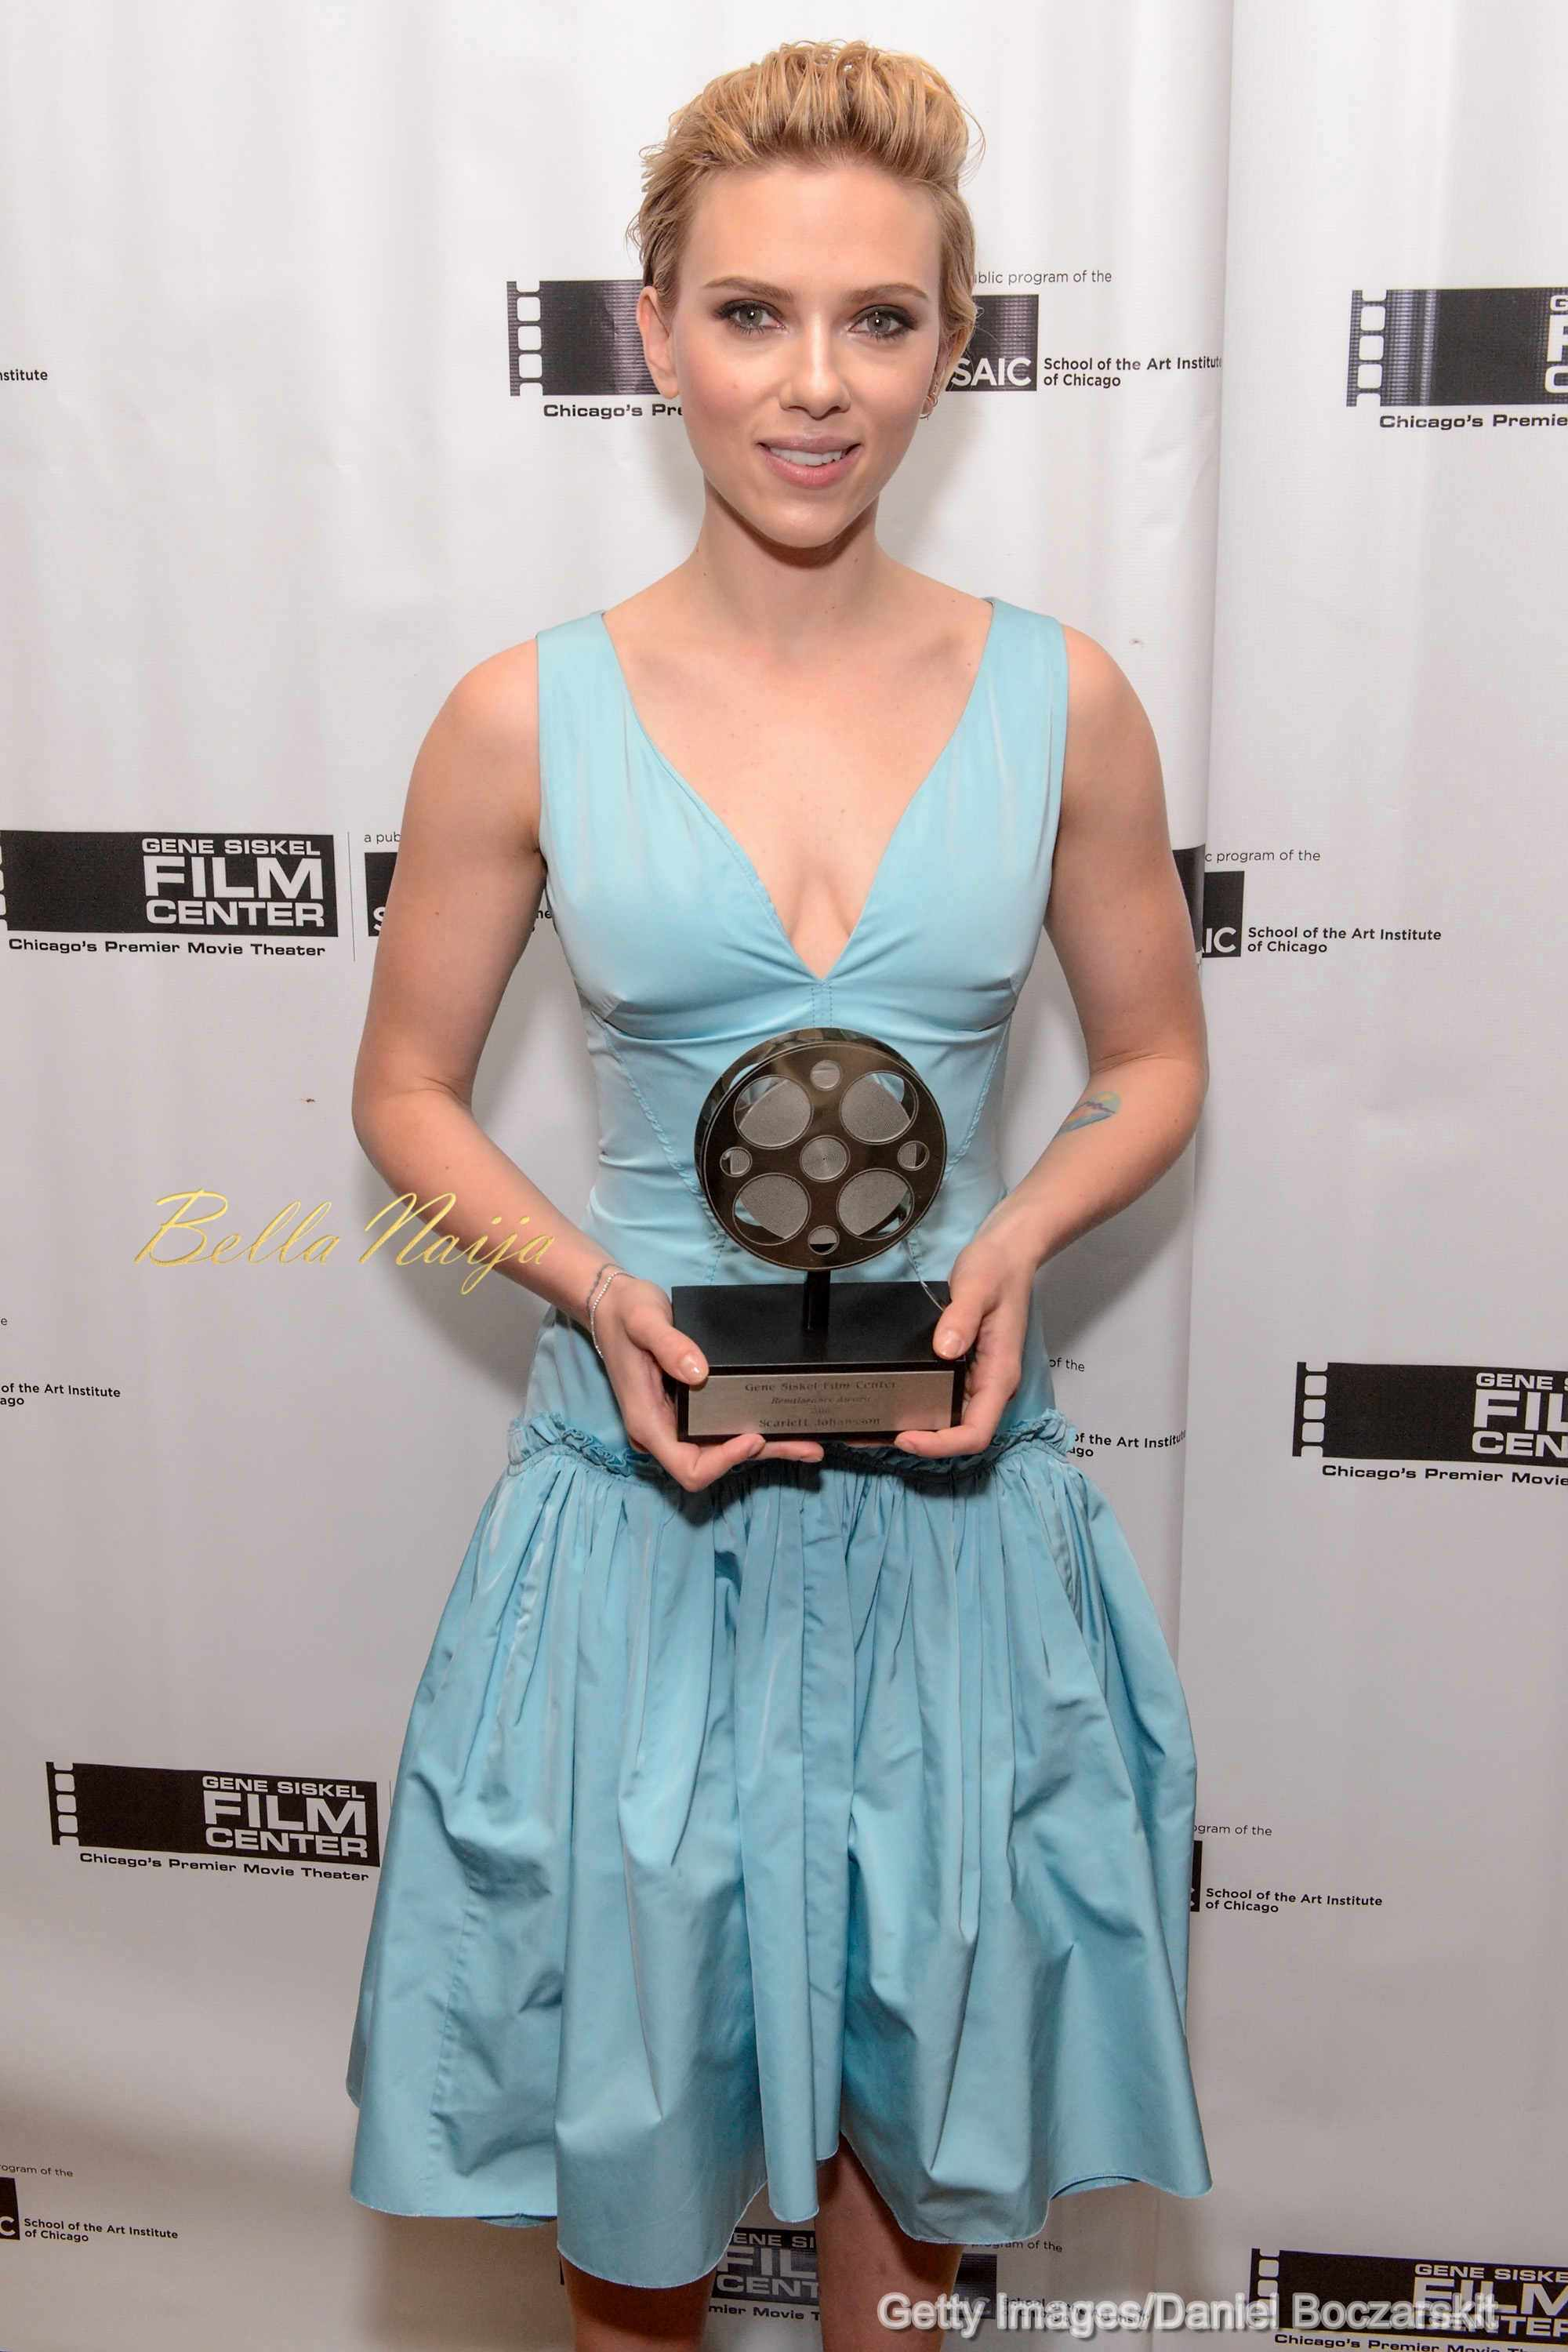 31-year old Actress, Scarlett Johansson is the Youngest & Only Woman ...